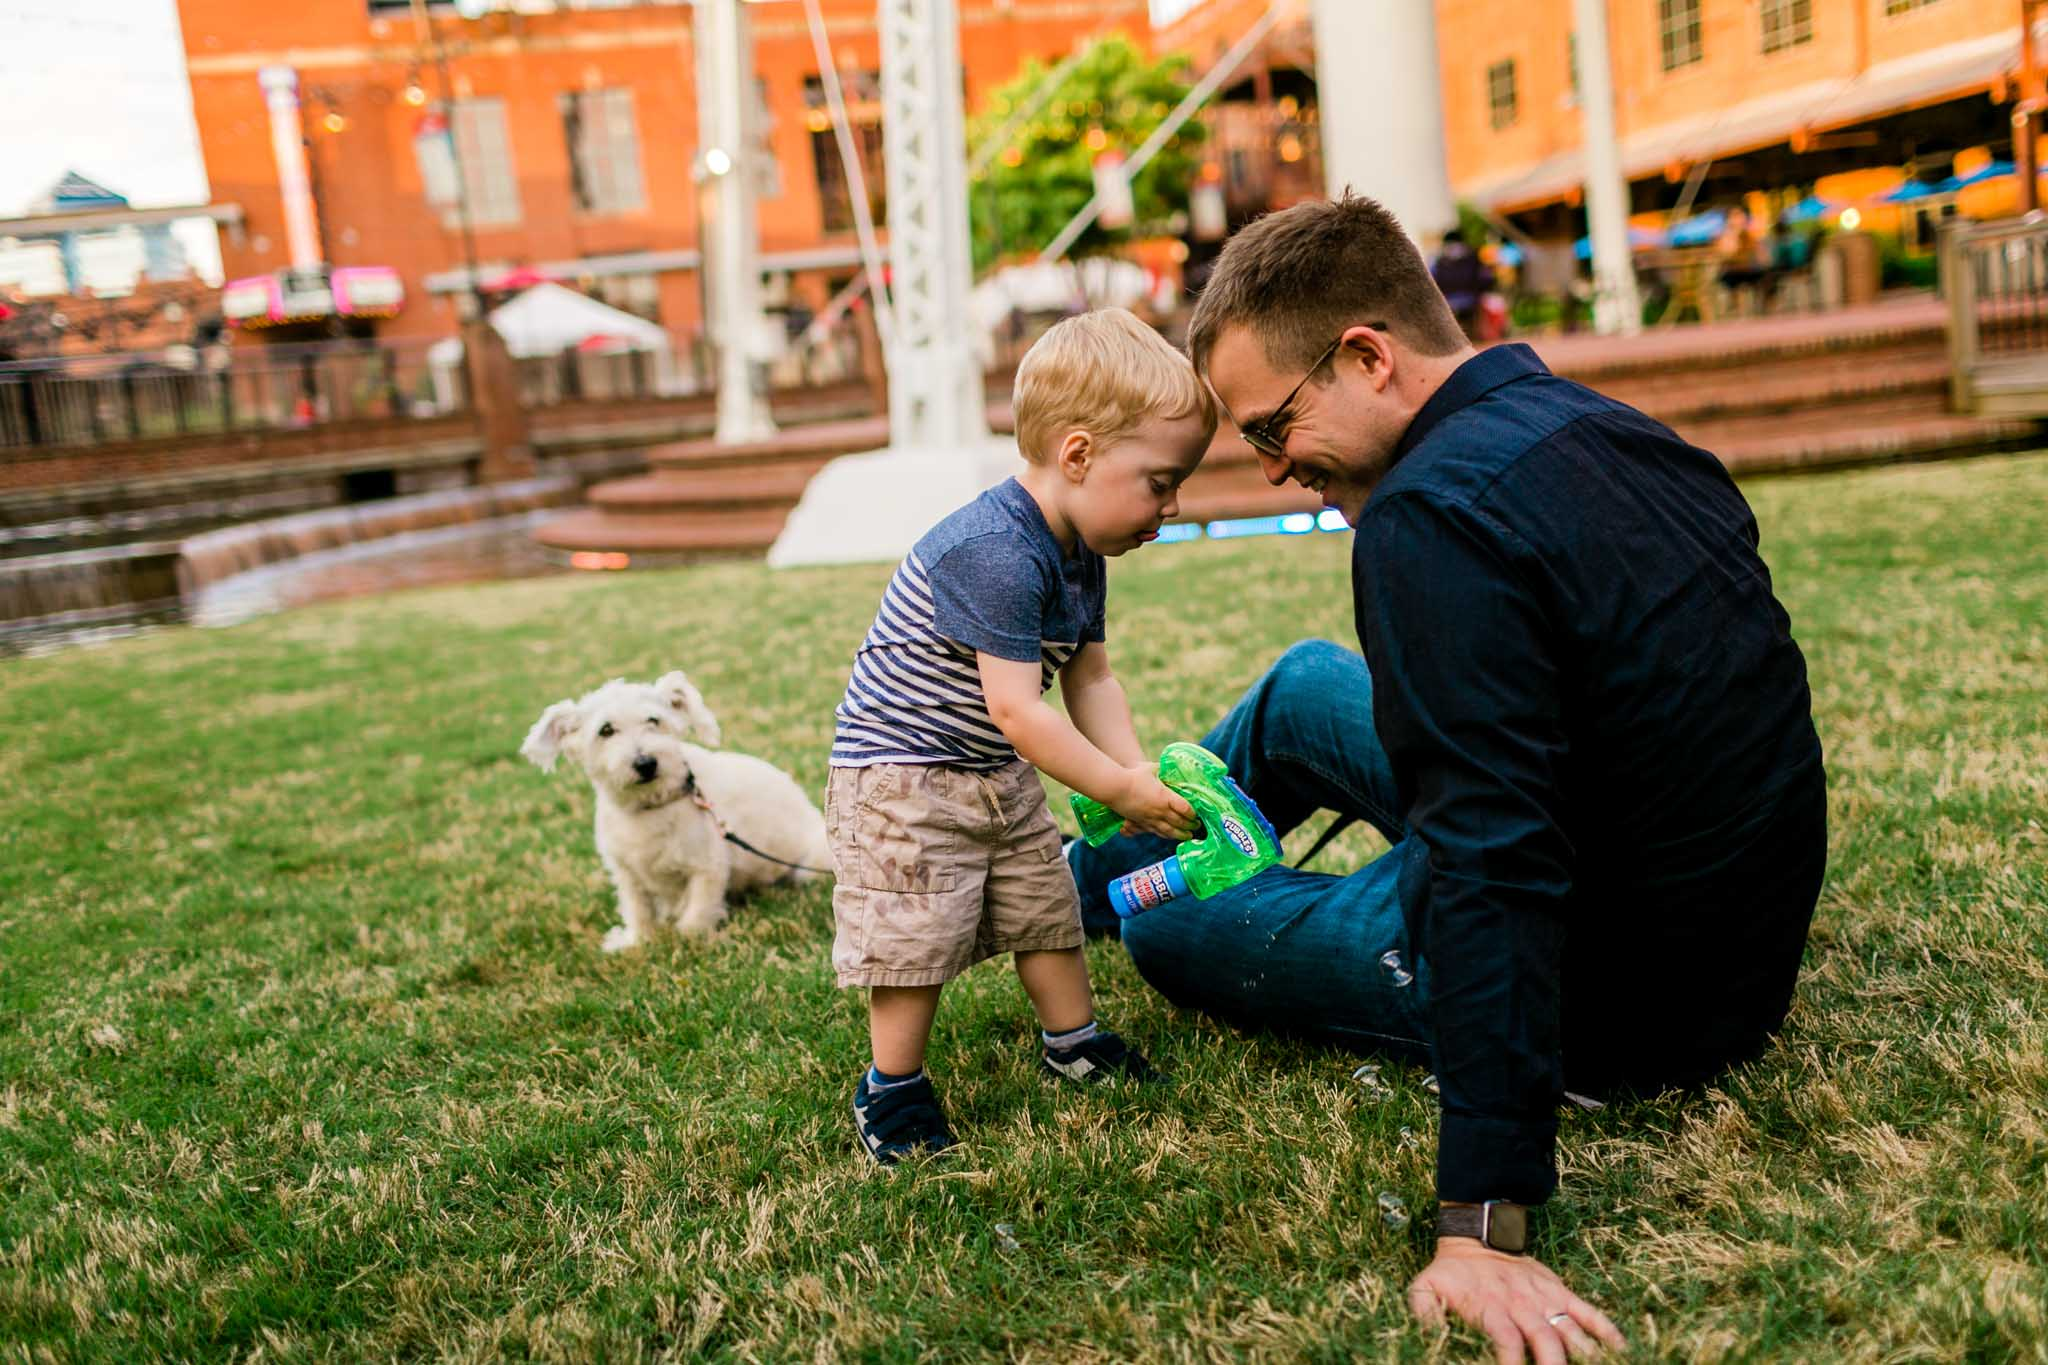 Candid photo of father and son | Durham Photographer | American Tobacco Campus | By G. Lin Photography